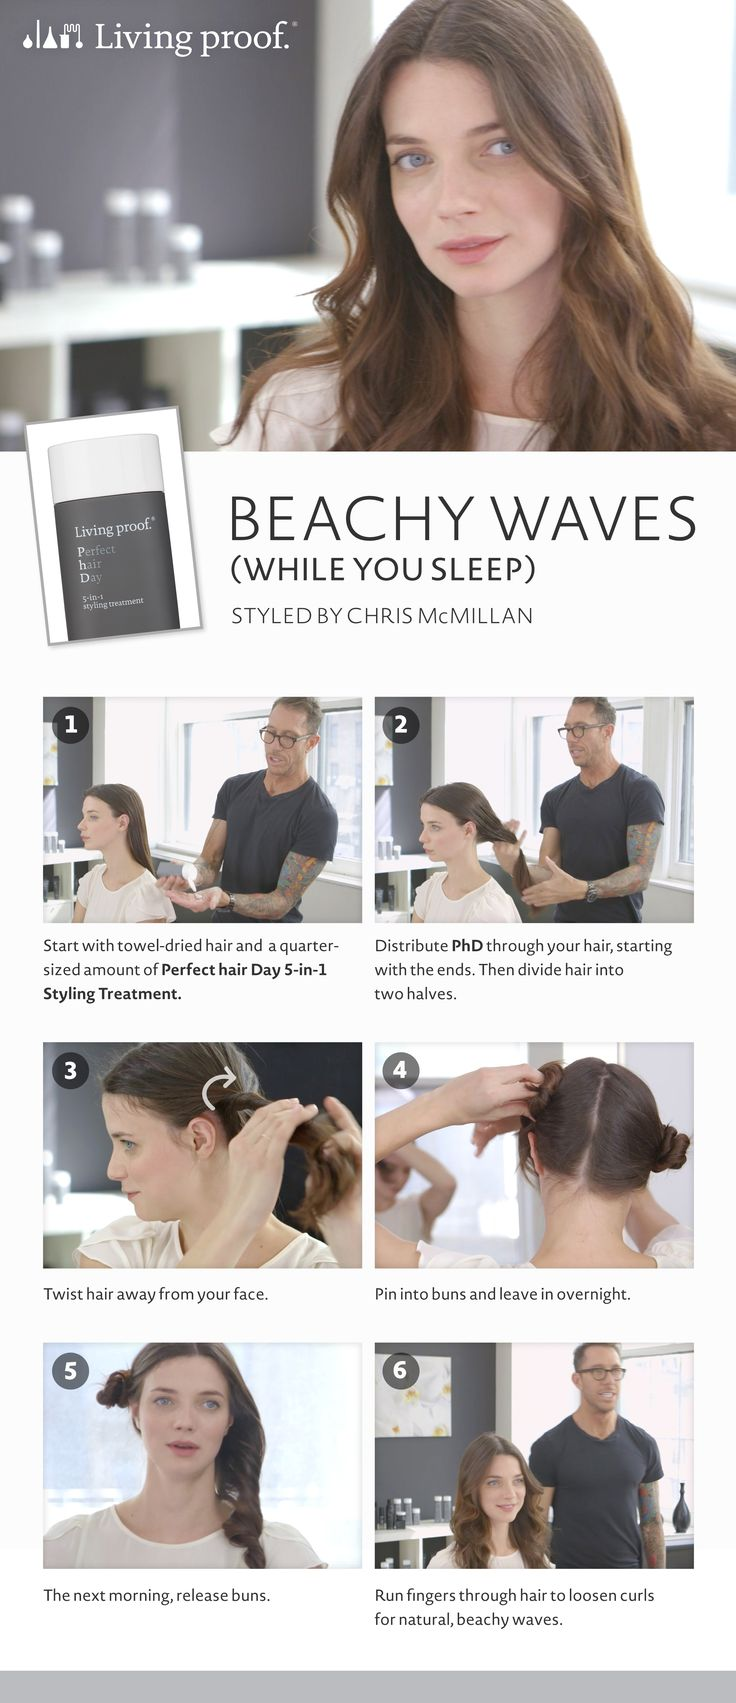 Here's the secret to styling your hair in natural, beachy waves…while you sleep!